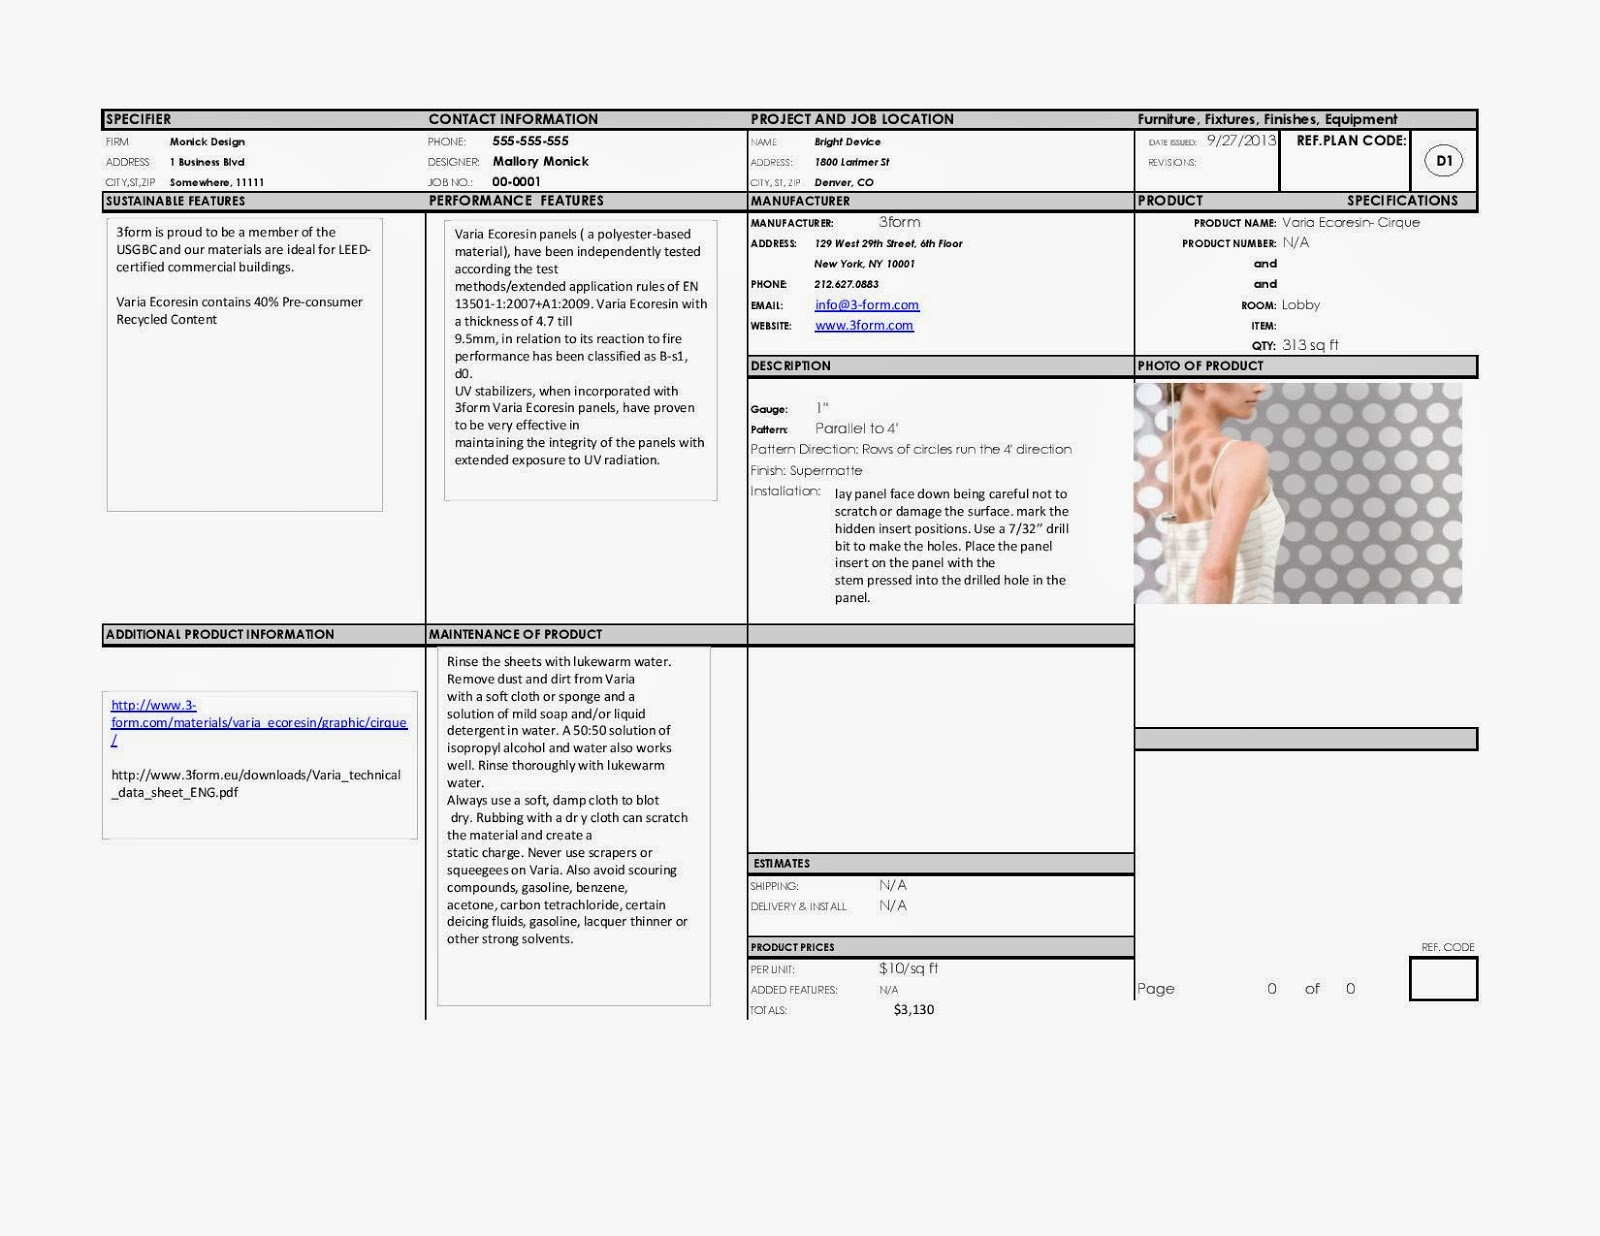 Interior design by mallory spec sheets and enlarged plans - Interior design materials and specifications ...